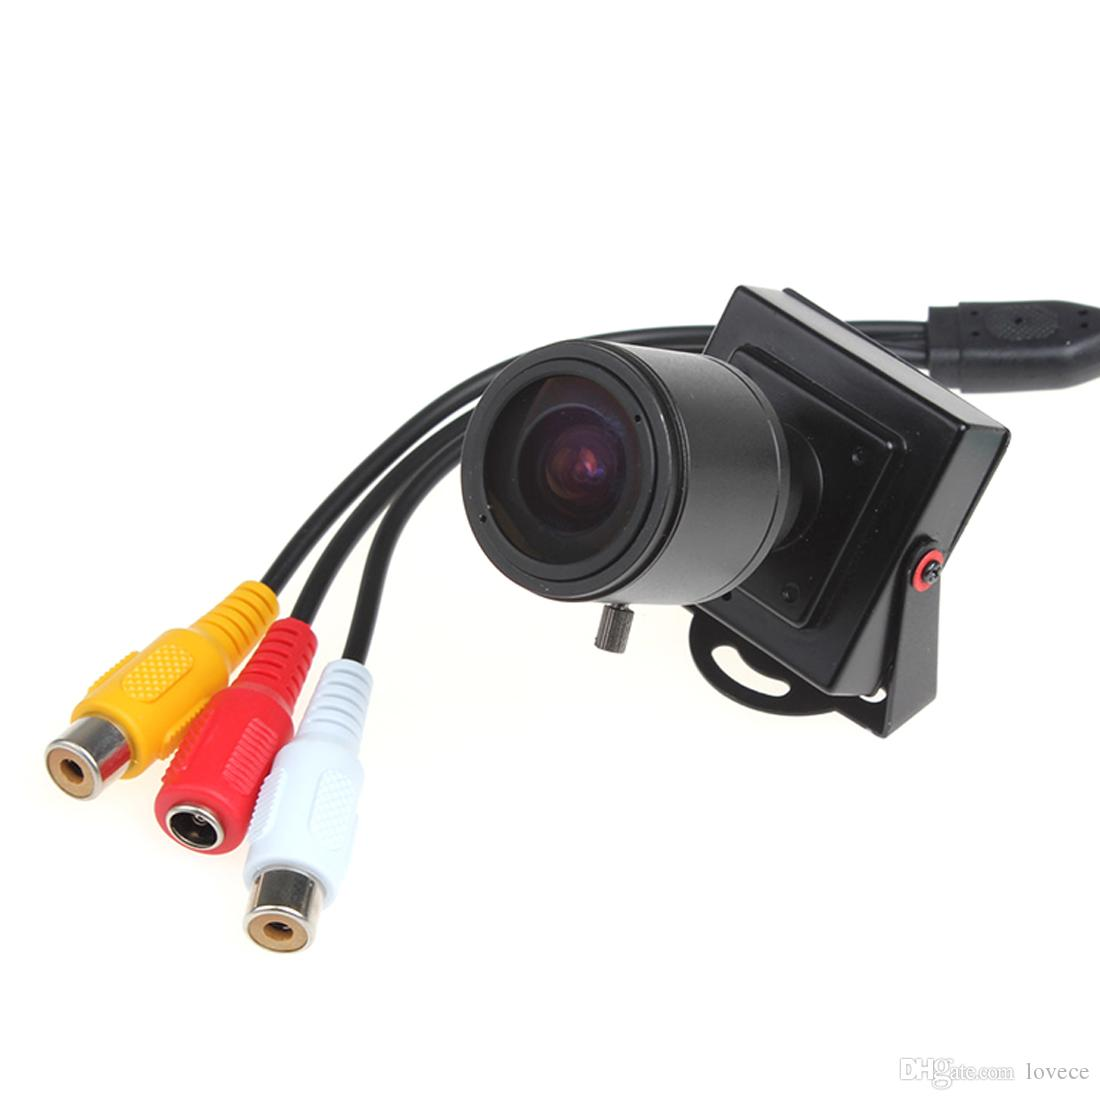 4pcs 2.8-12mm Lente Manual Mini HD 700TVL 1/3 CMOS Seguridad Audio Video Color CCTV Cámara CCT_535